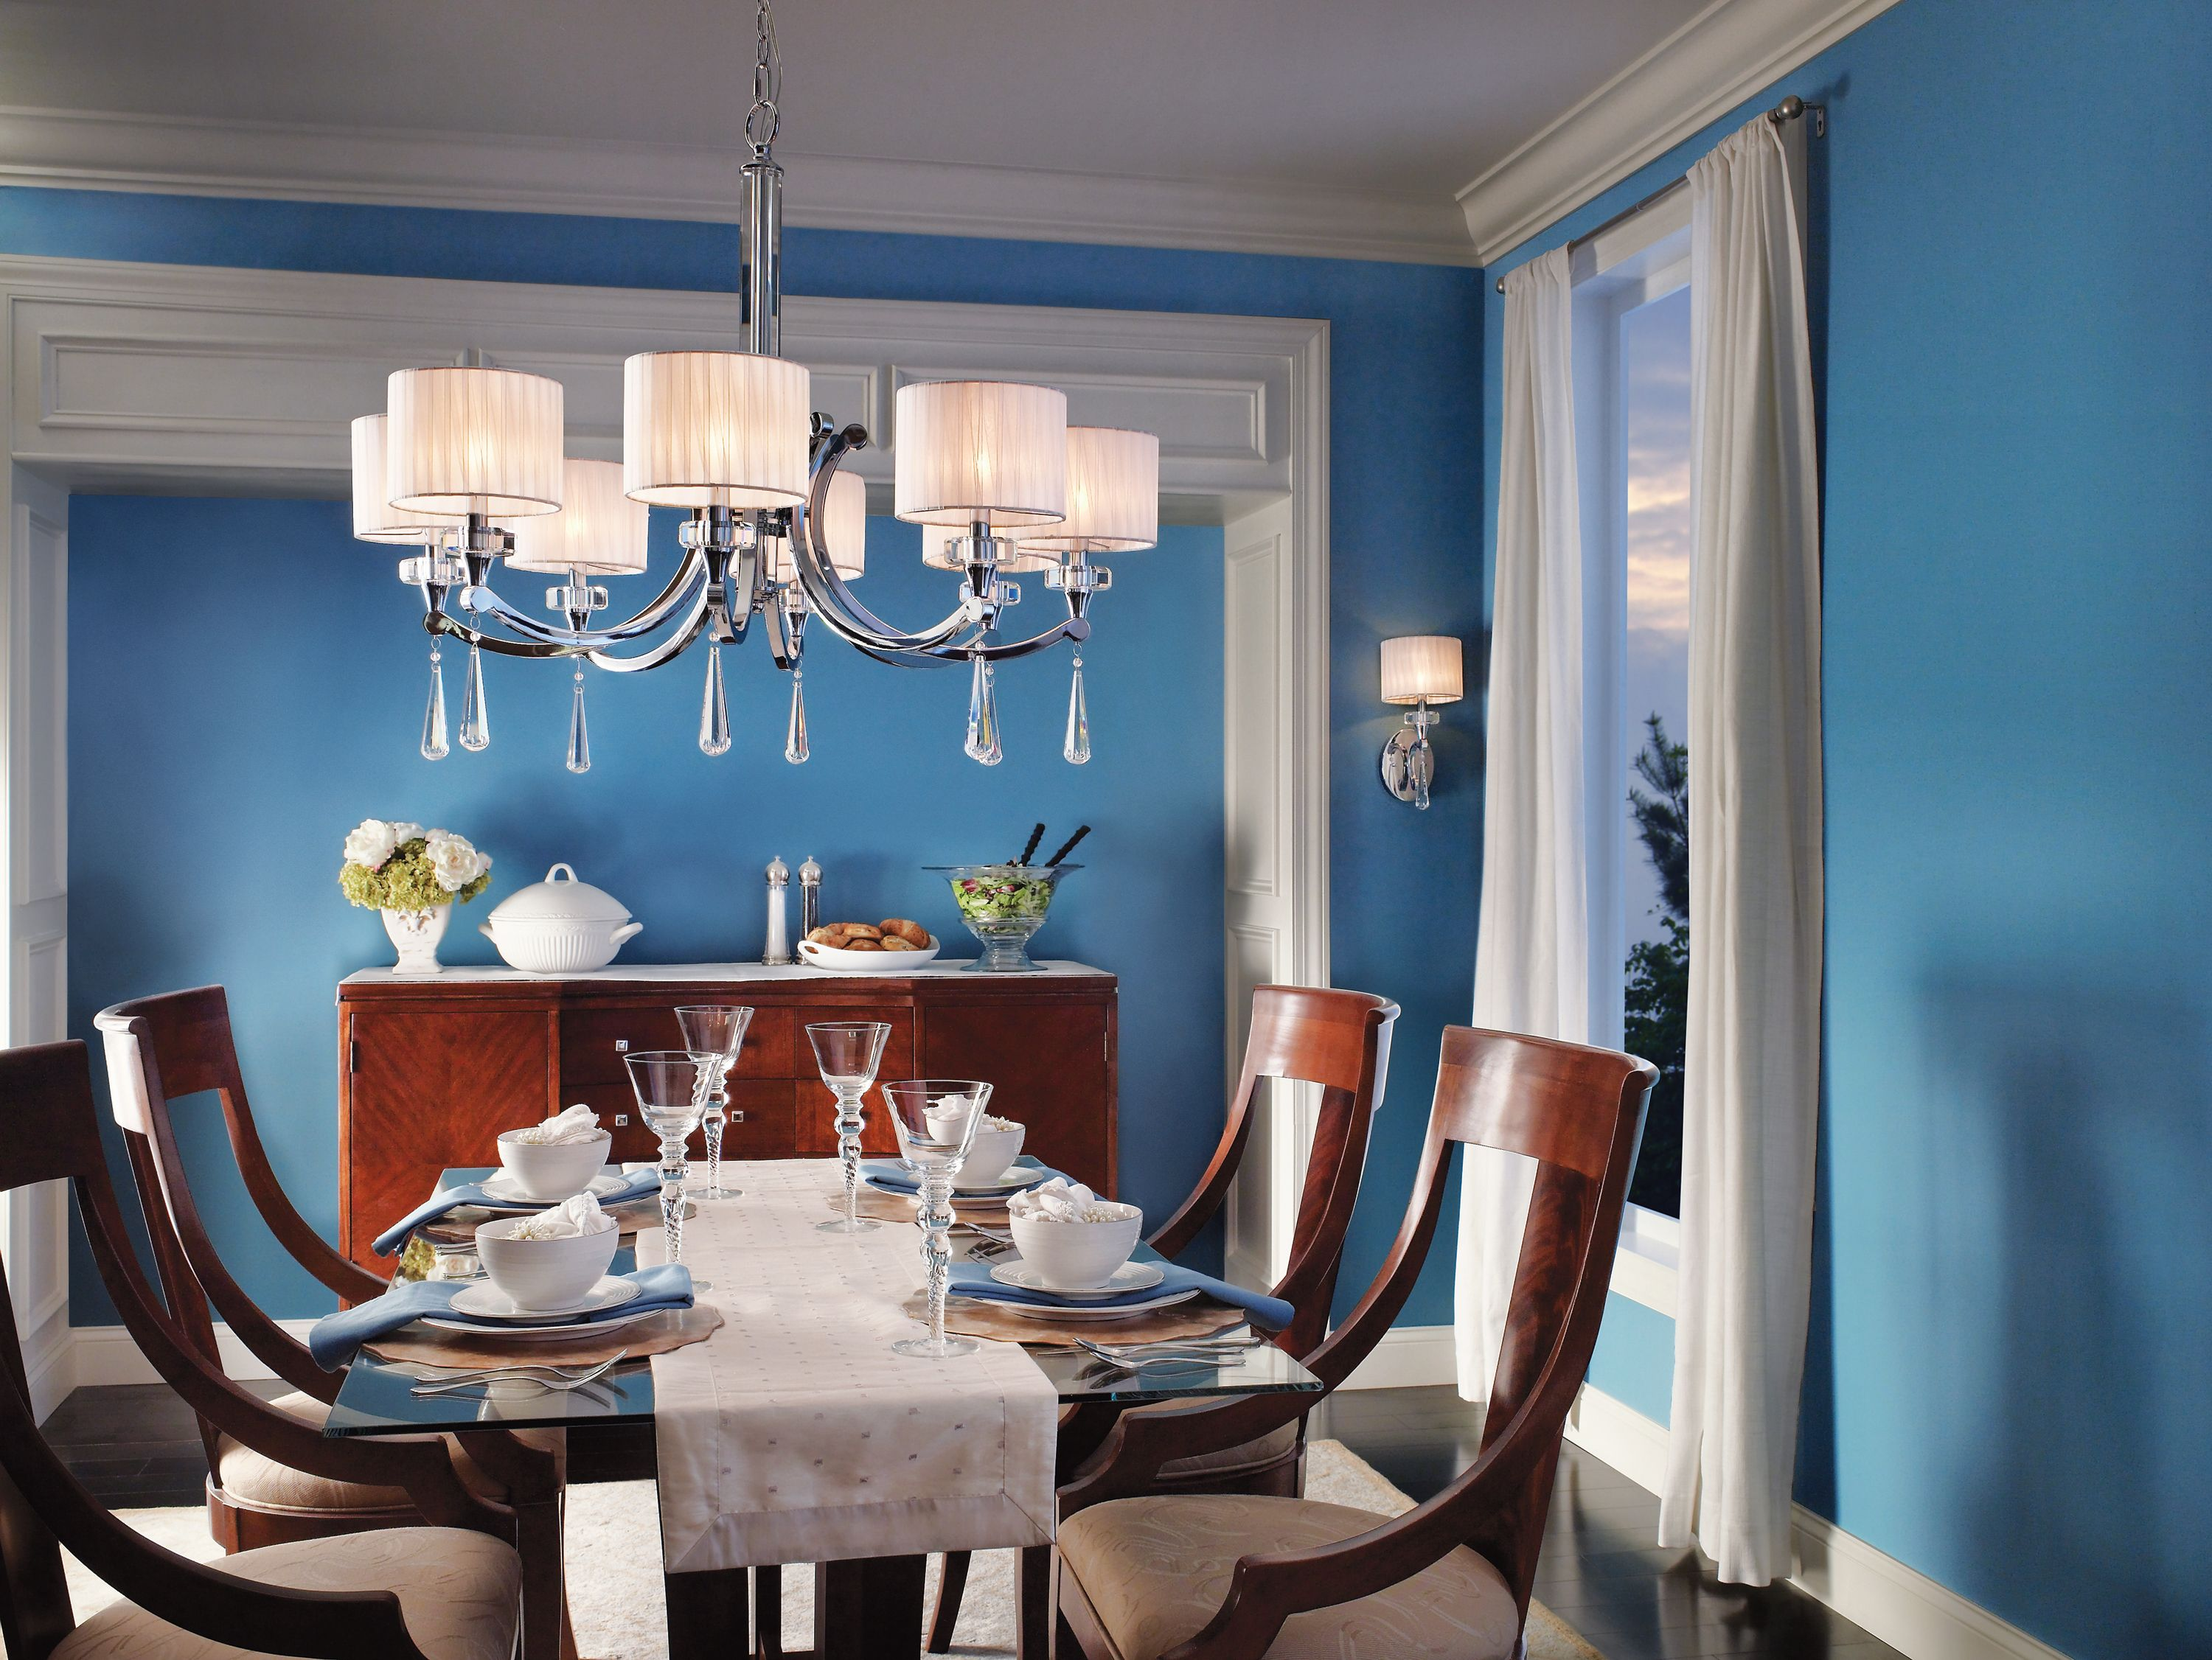 Explore Dining Room Chandeliers And More!